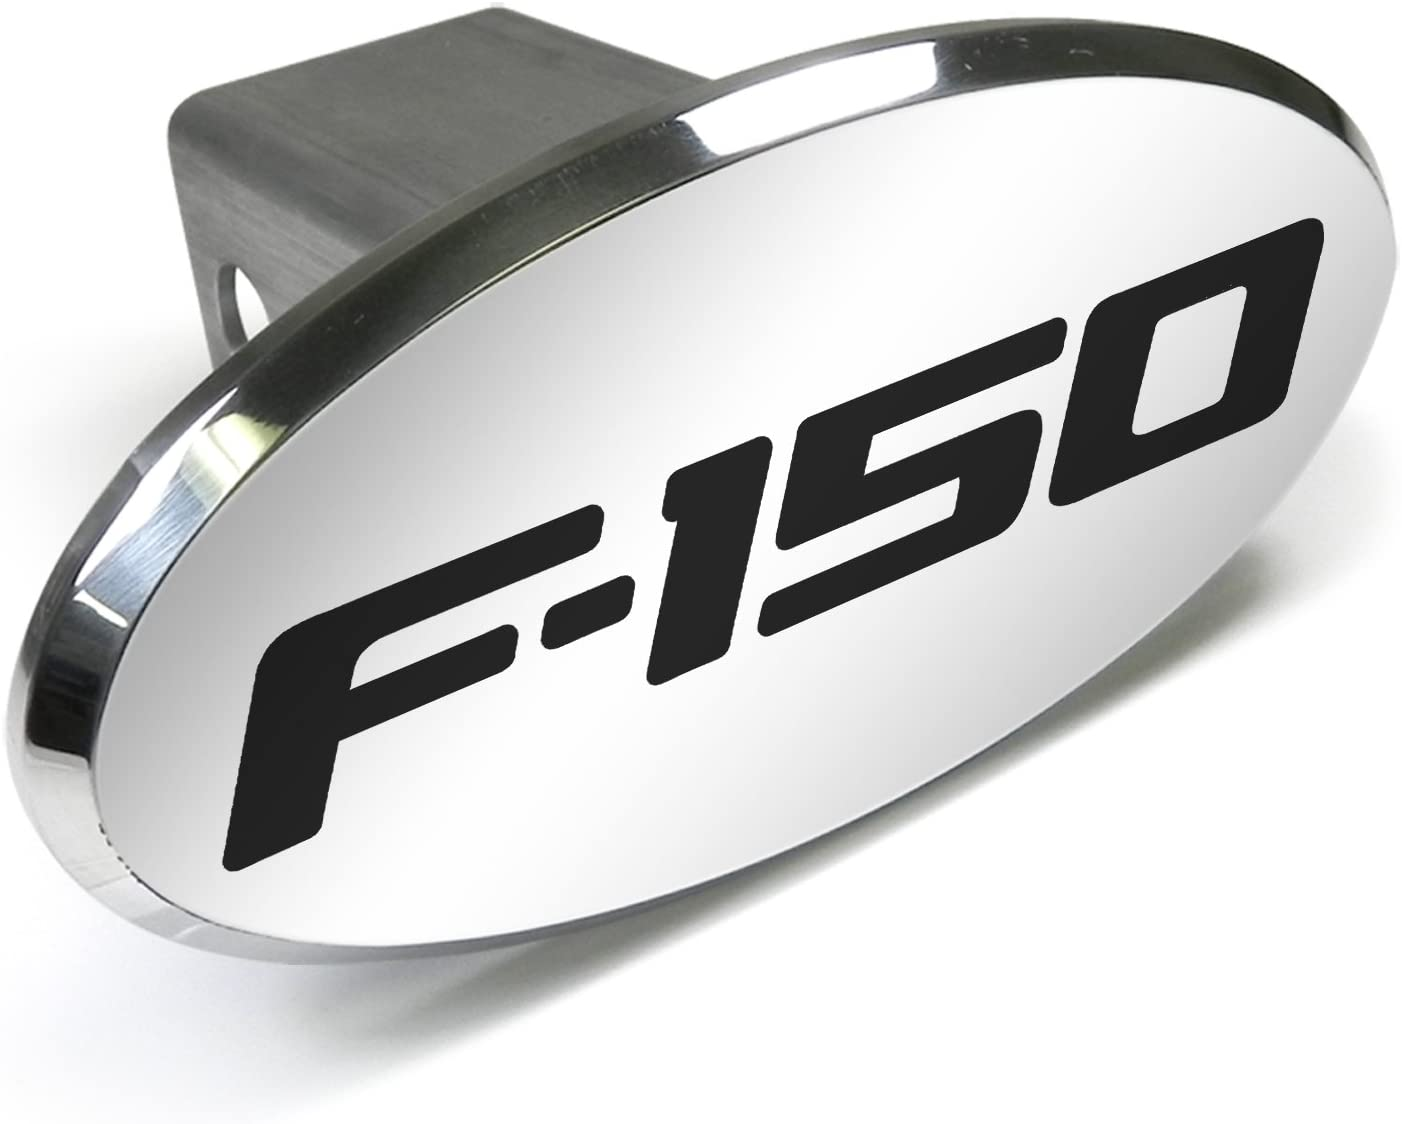 Ford F-150 Oval Aluminum Tow Hitch Cover